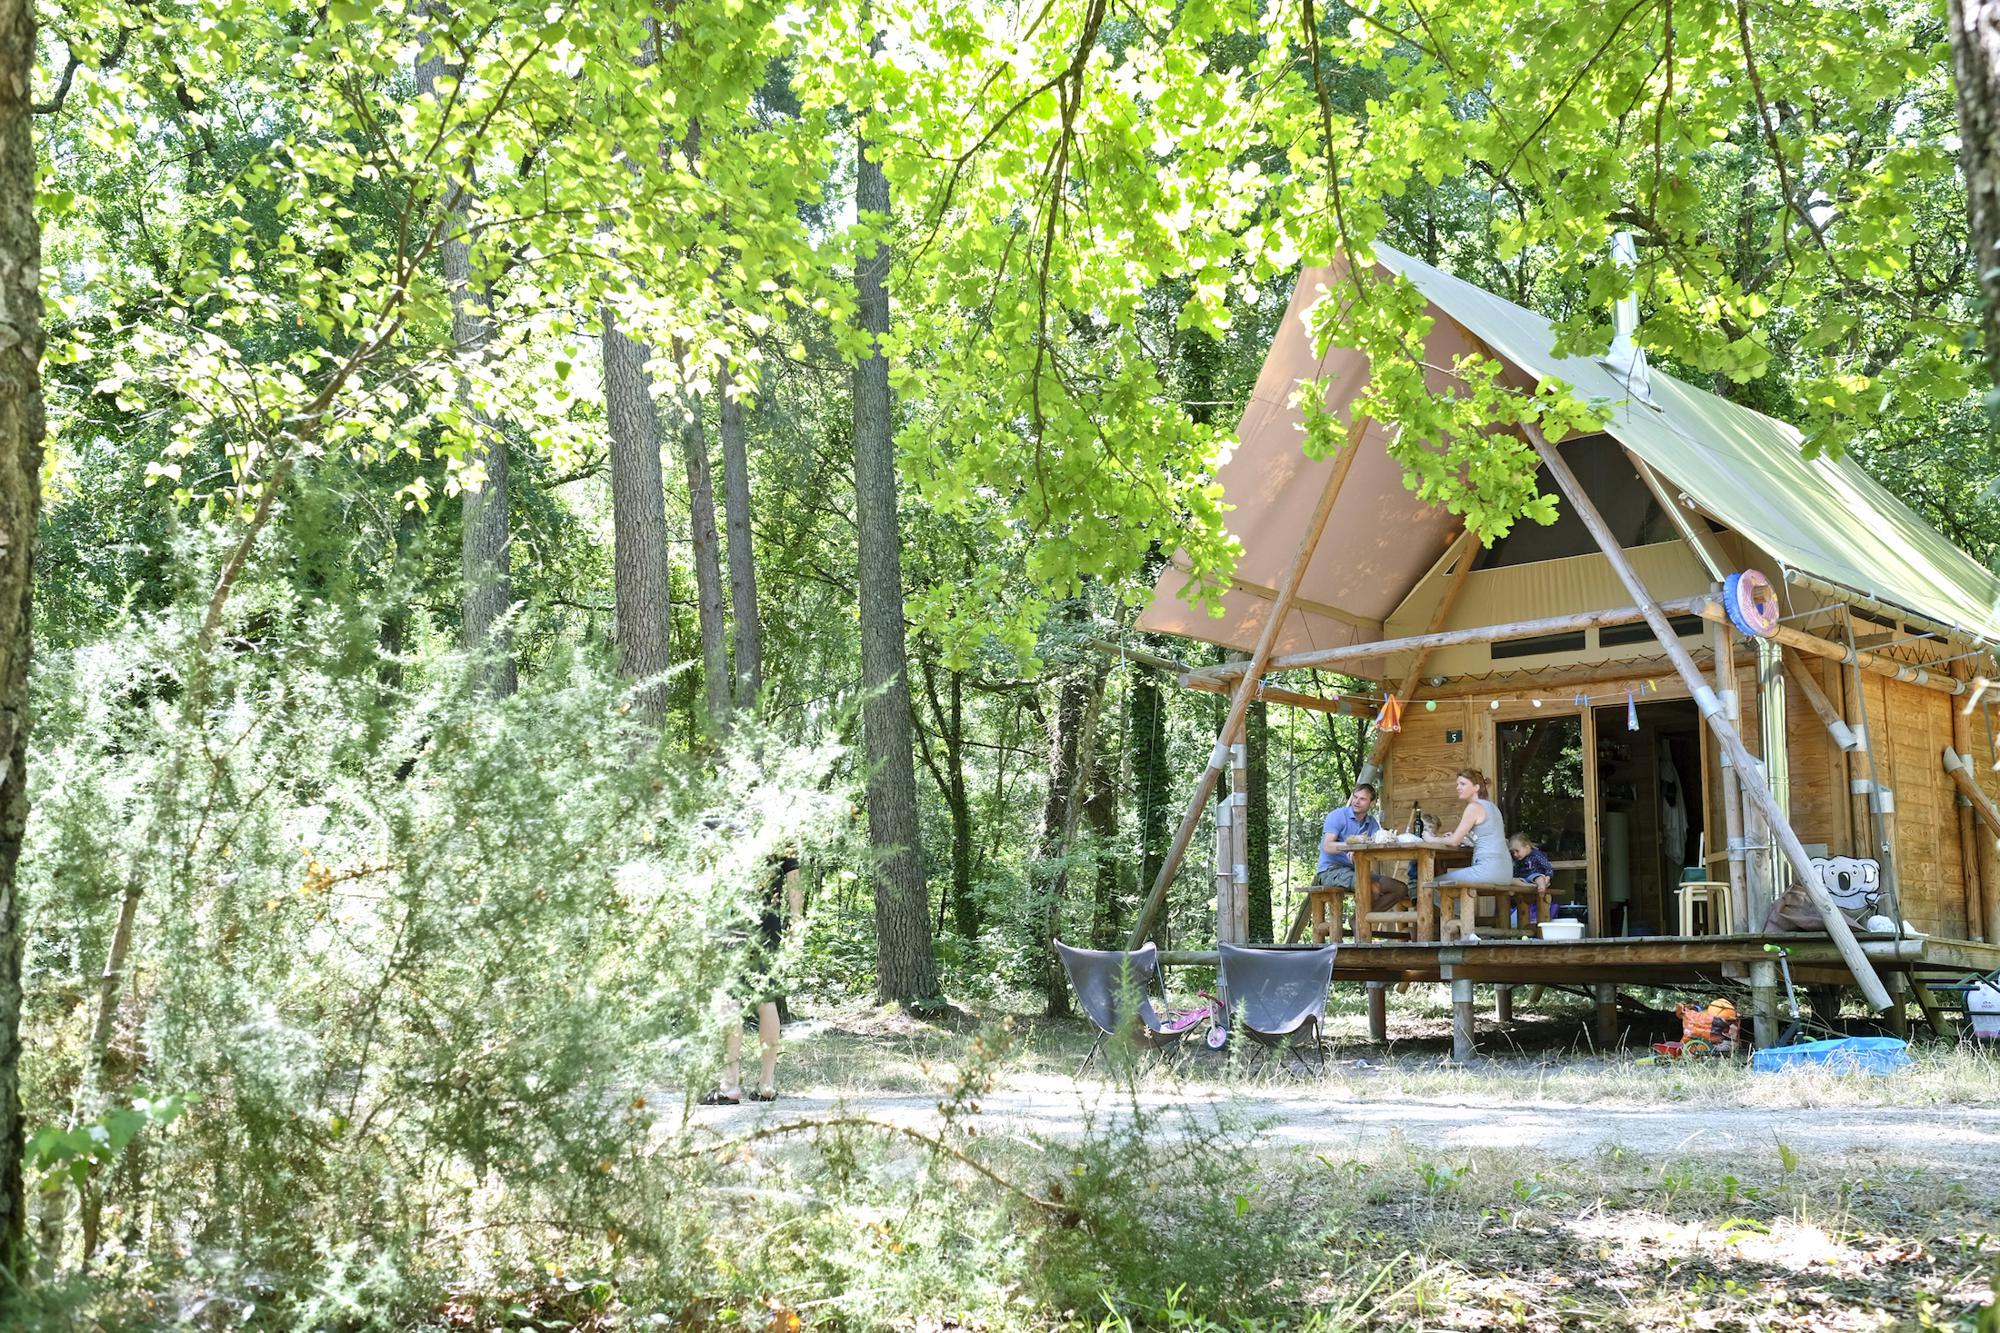 Glamping in Indre-et-Loire | Best Glamping Sites in Indre-et-Loire